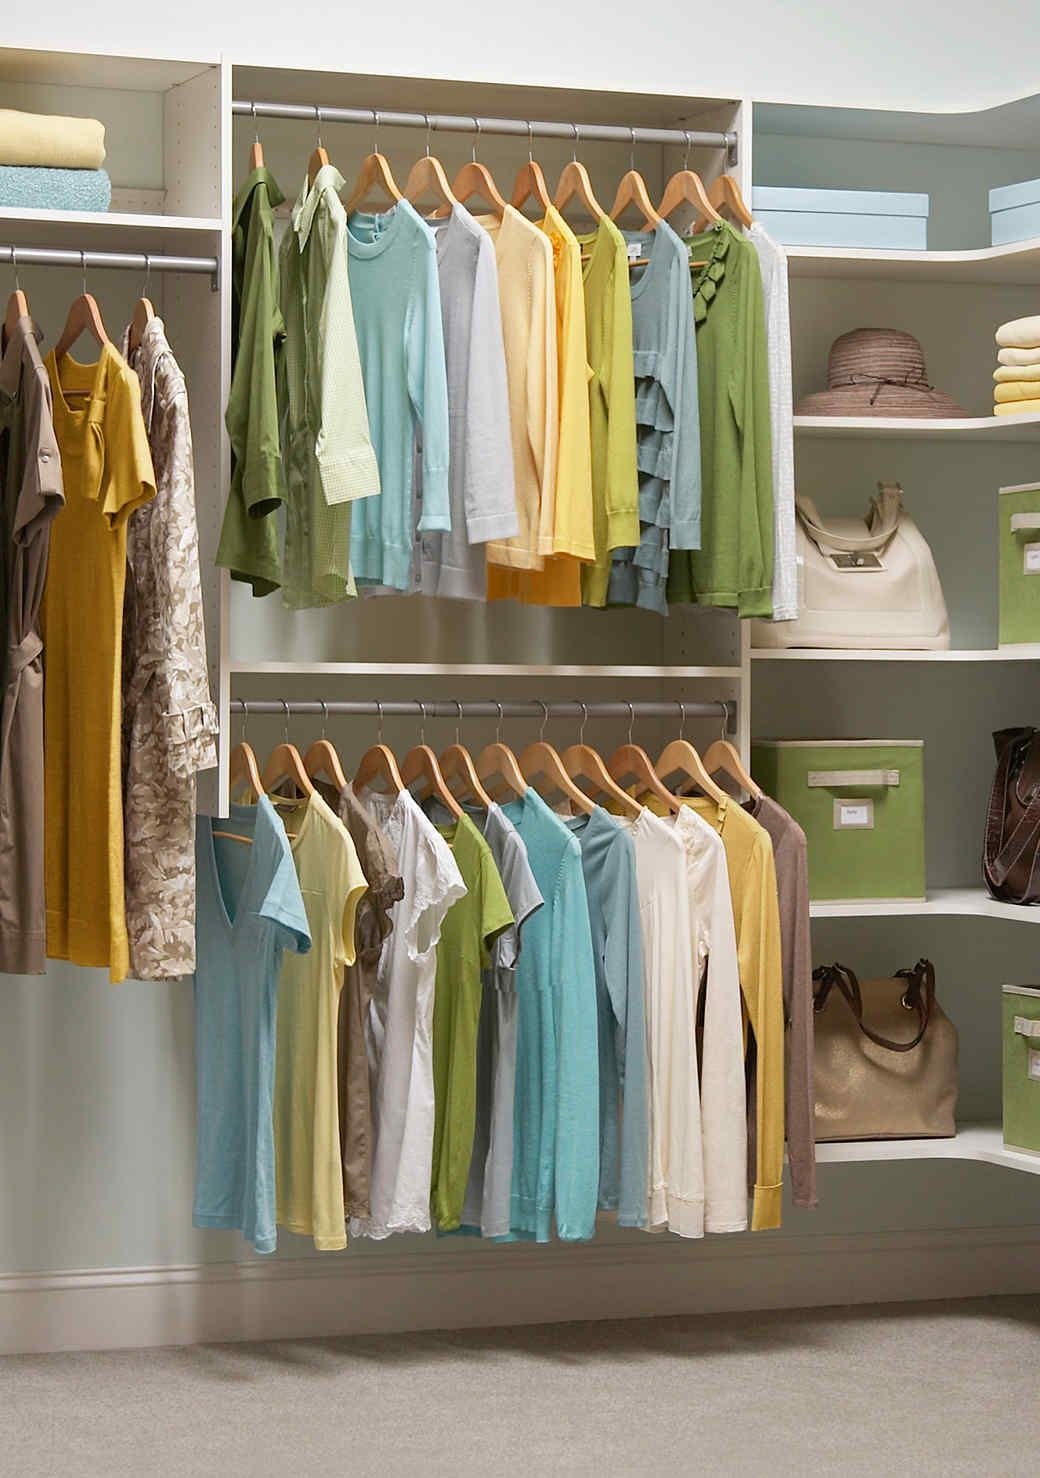 5 Closet Organization Tips Thatu0027ll Make Getting Dressed More Fun